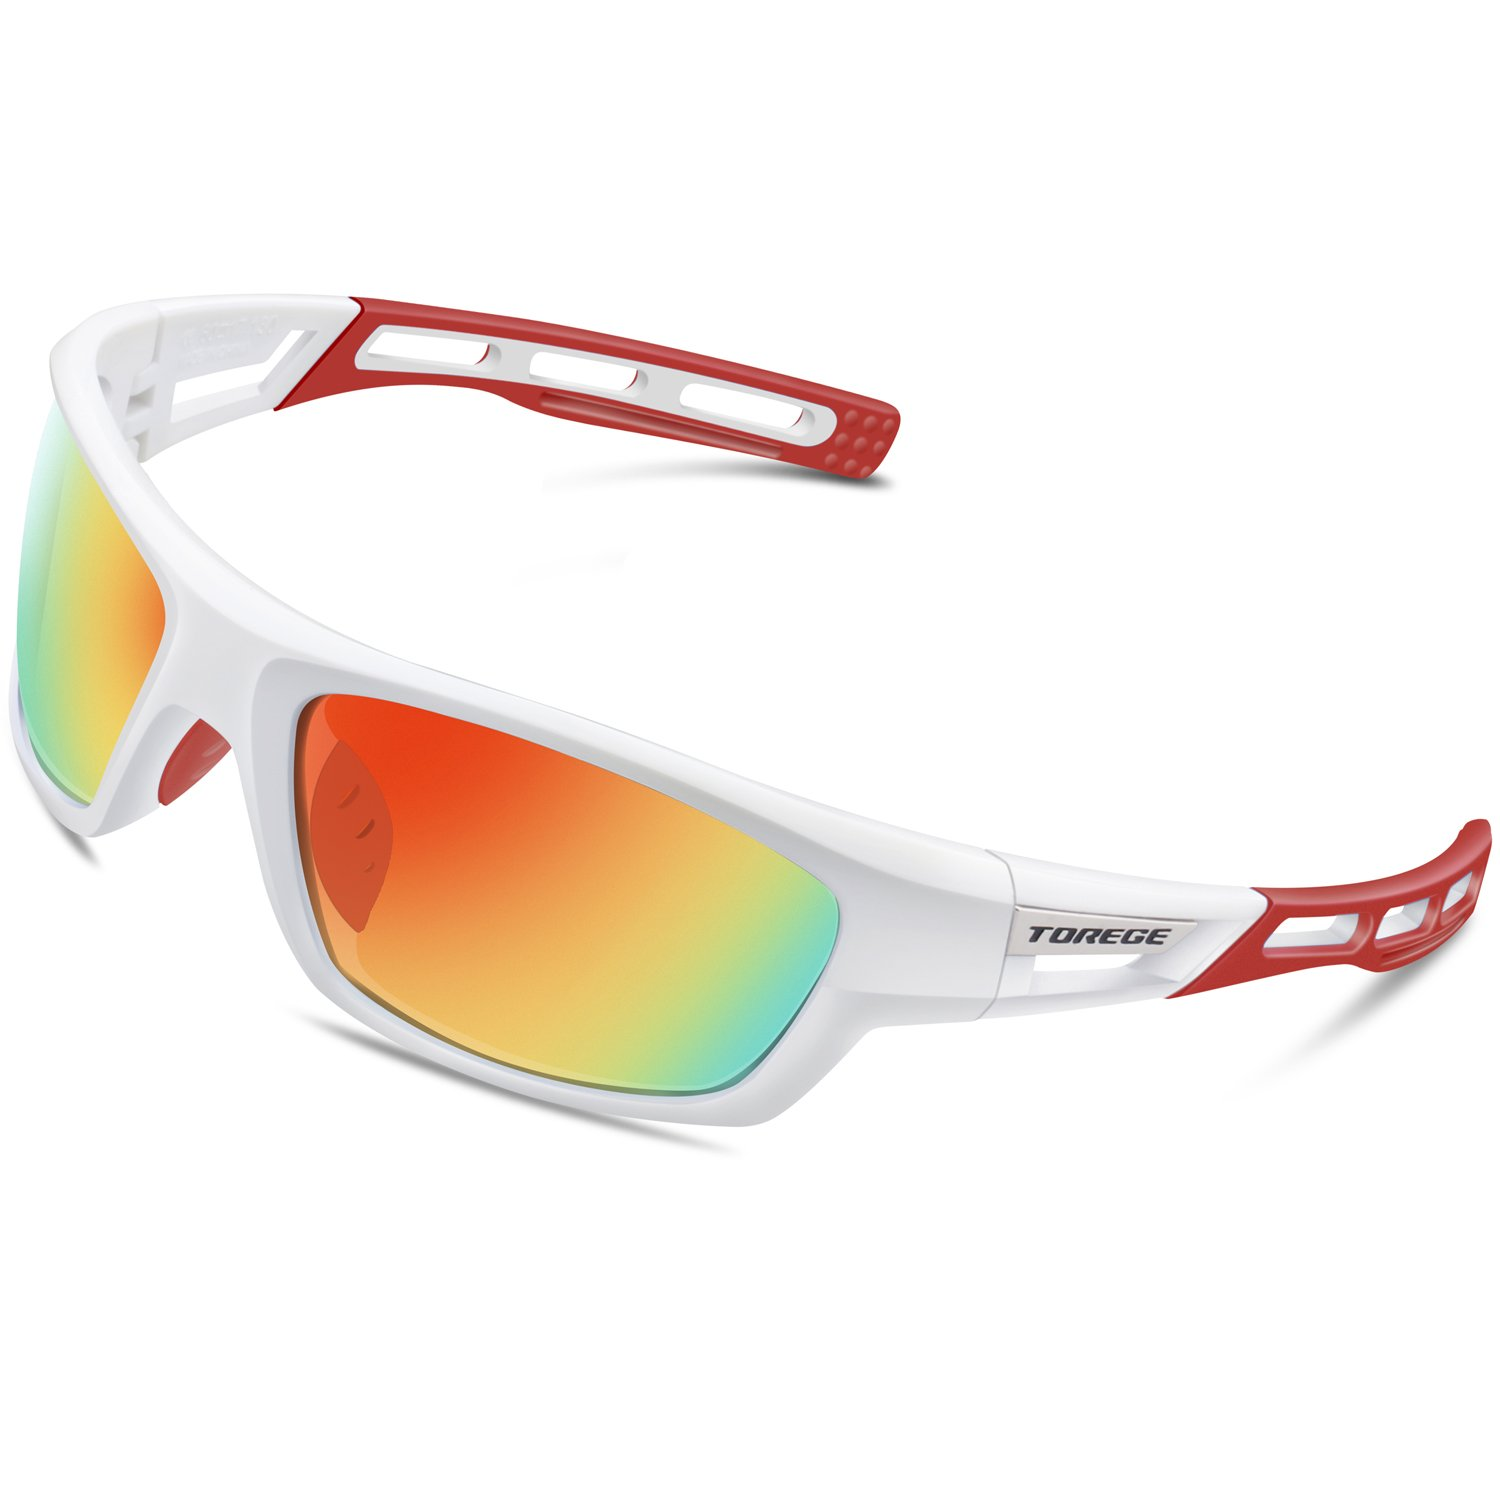 998c695c6a TOREGE Polarized Sports Sunglasses for Men Women Cycling Running Driving  Fishing Golf Baseball Glasses EMS-TR90 Unbreakable Frame TR007 (WhiteRedRed  Lens)